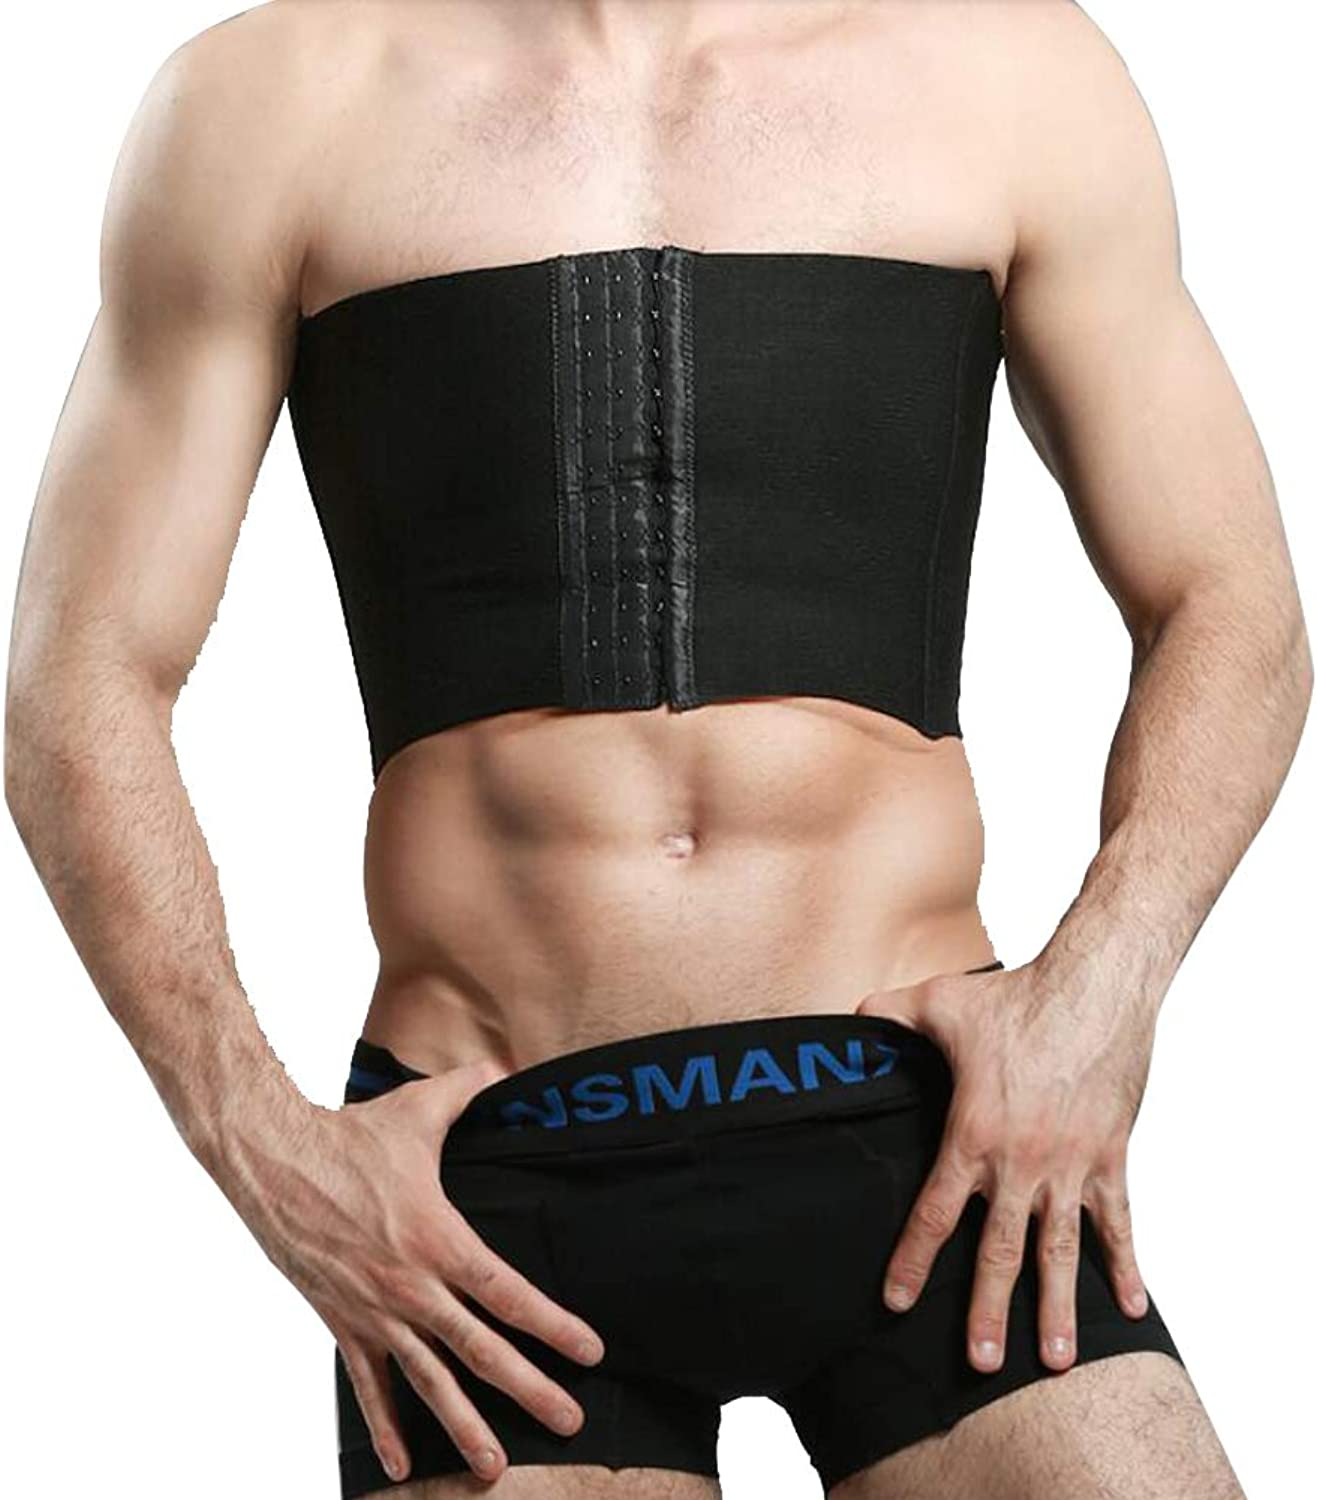 Men's Hide Gynecomastia Moobs Compression Shirt Corsets Strapless Provides Back Support,M